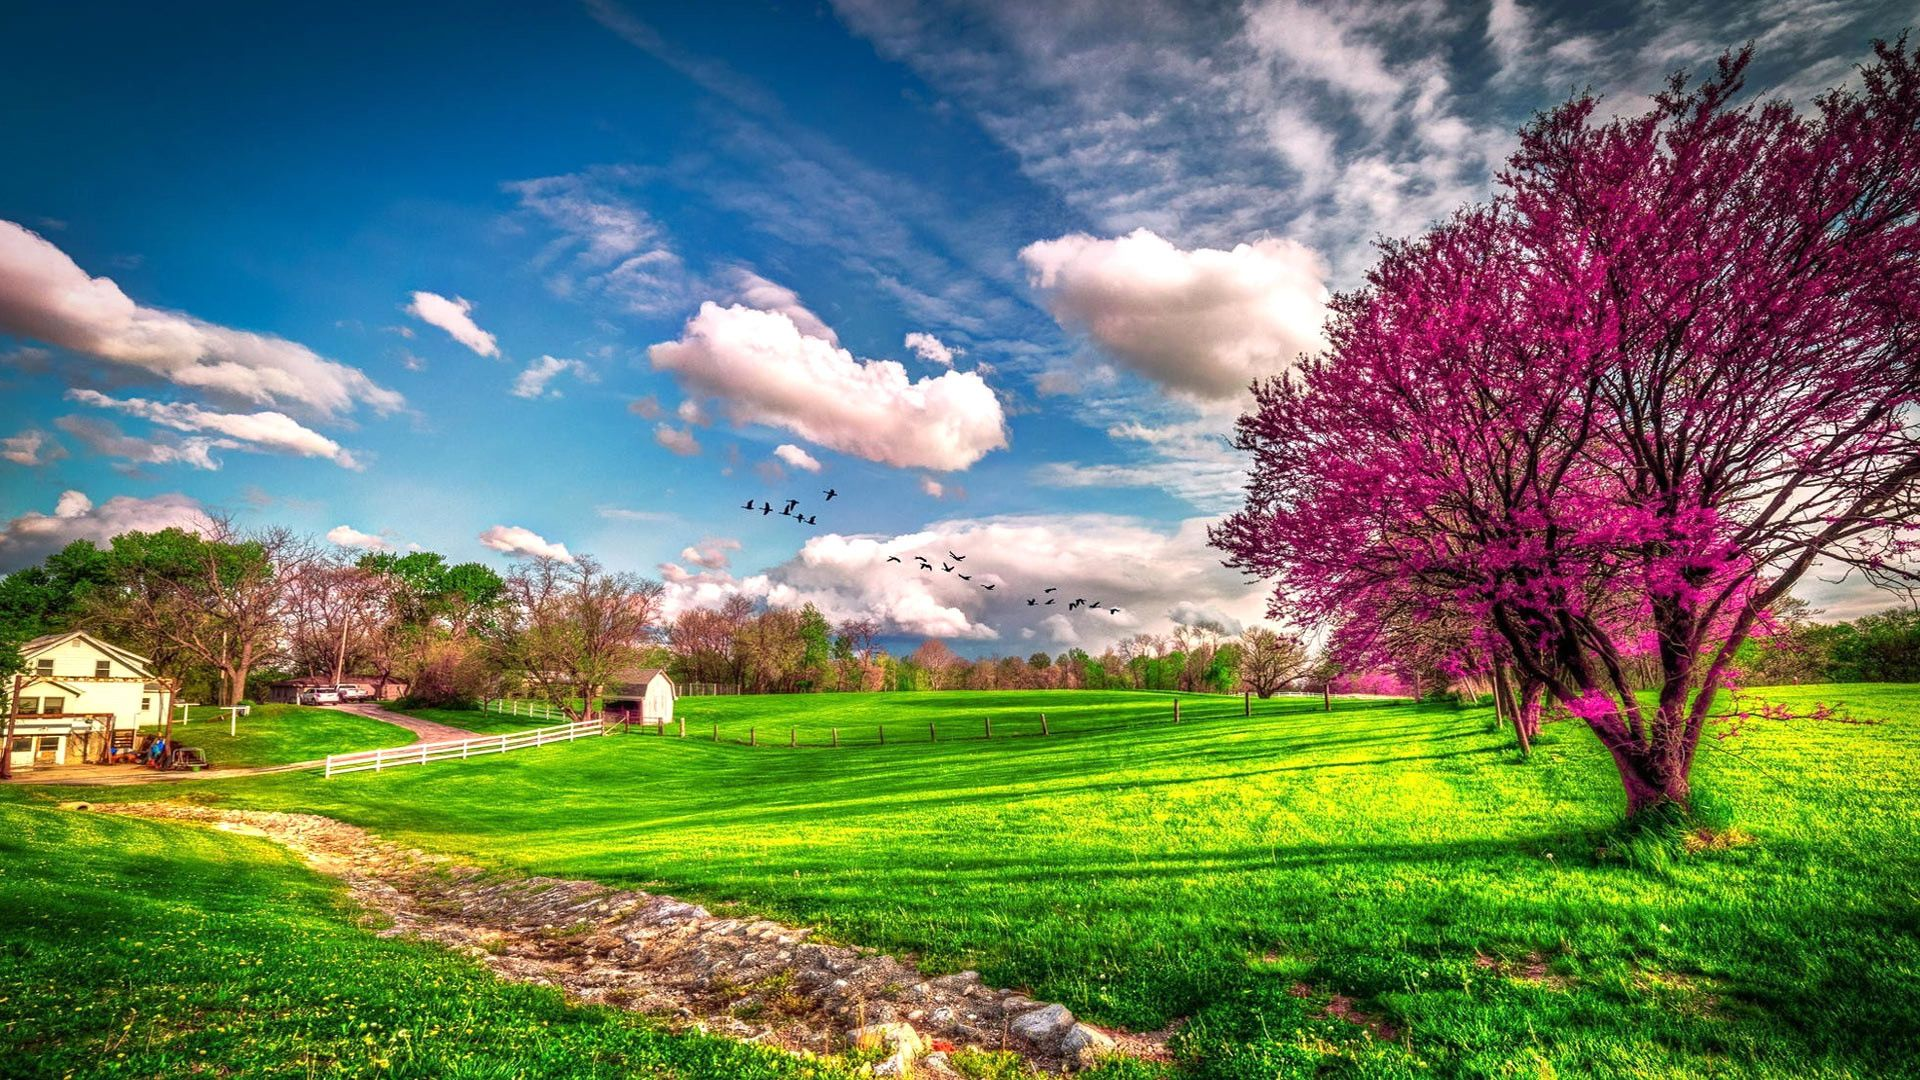 Landscape beautiful spring nature spring wallpapers for Beautiful garden images hd